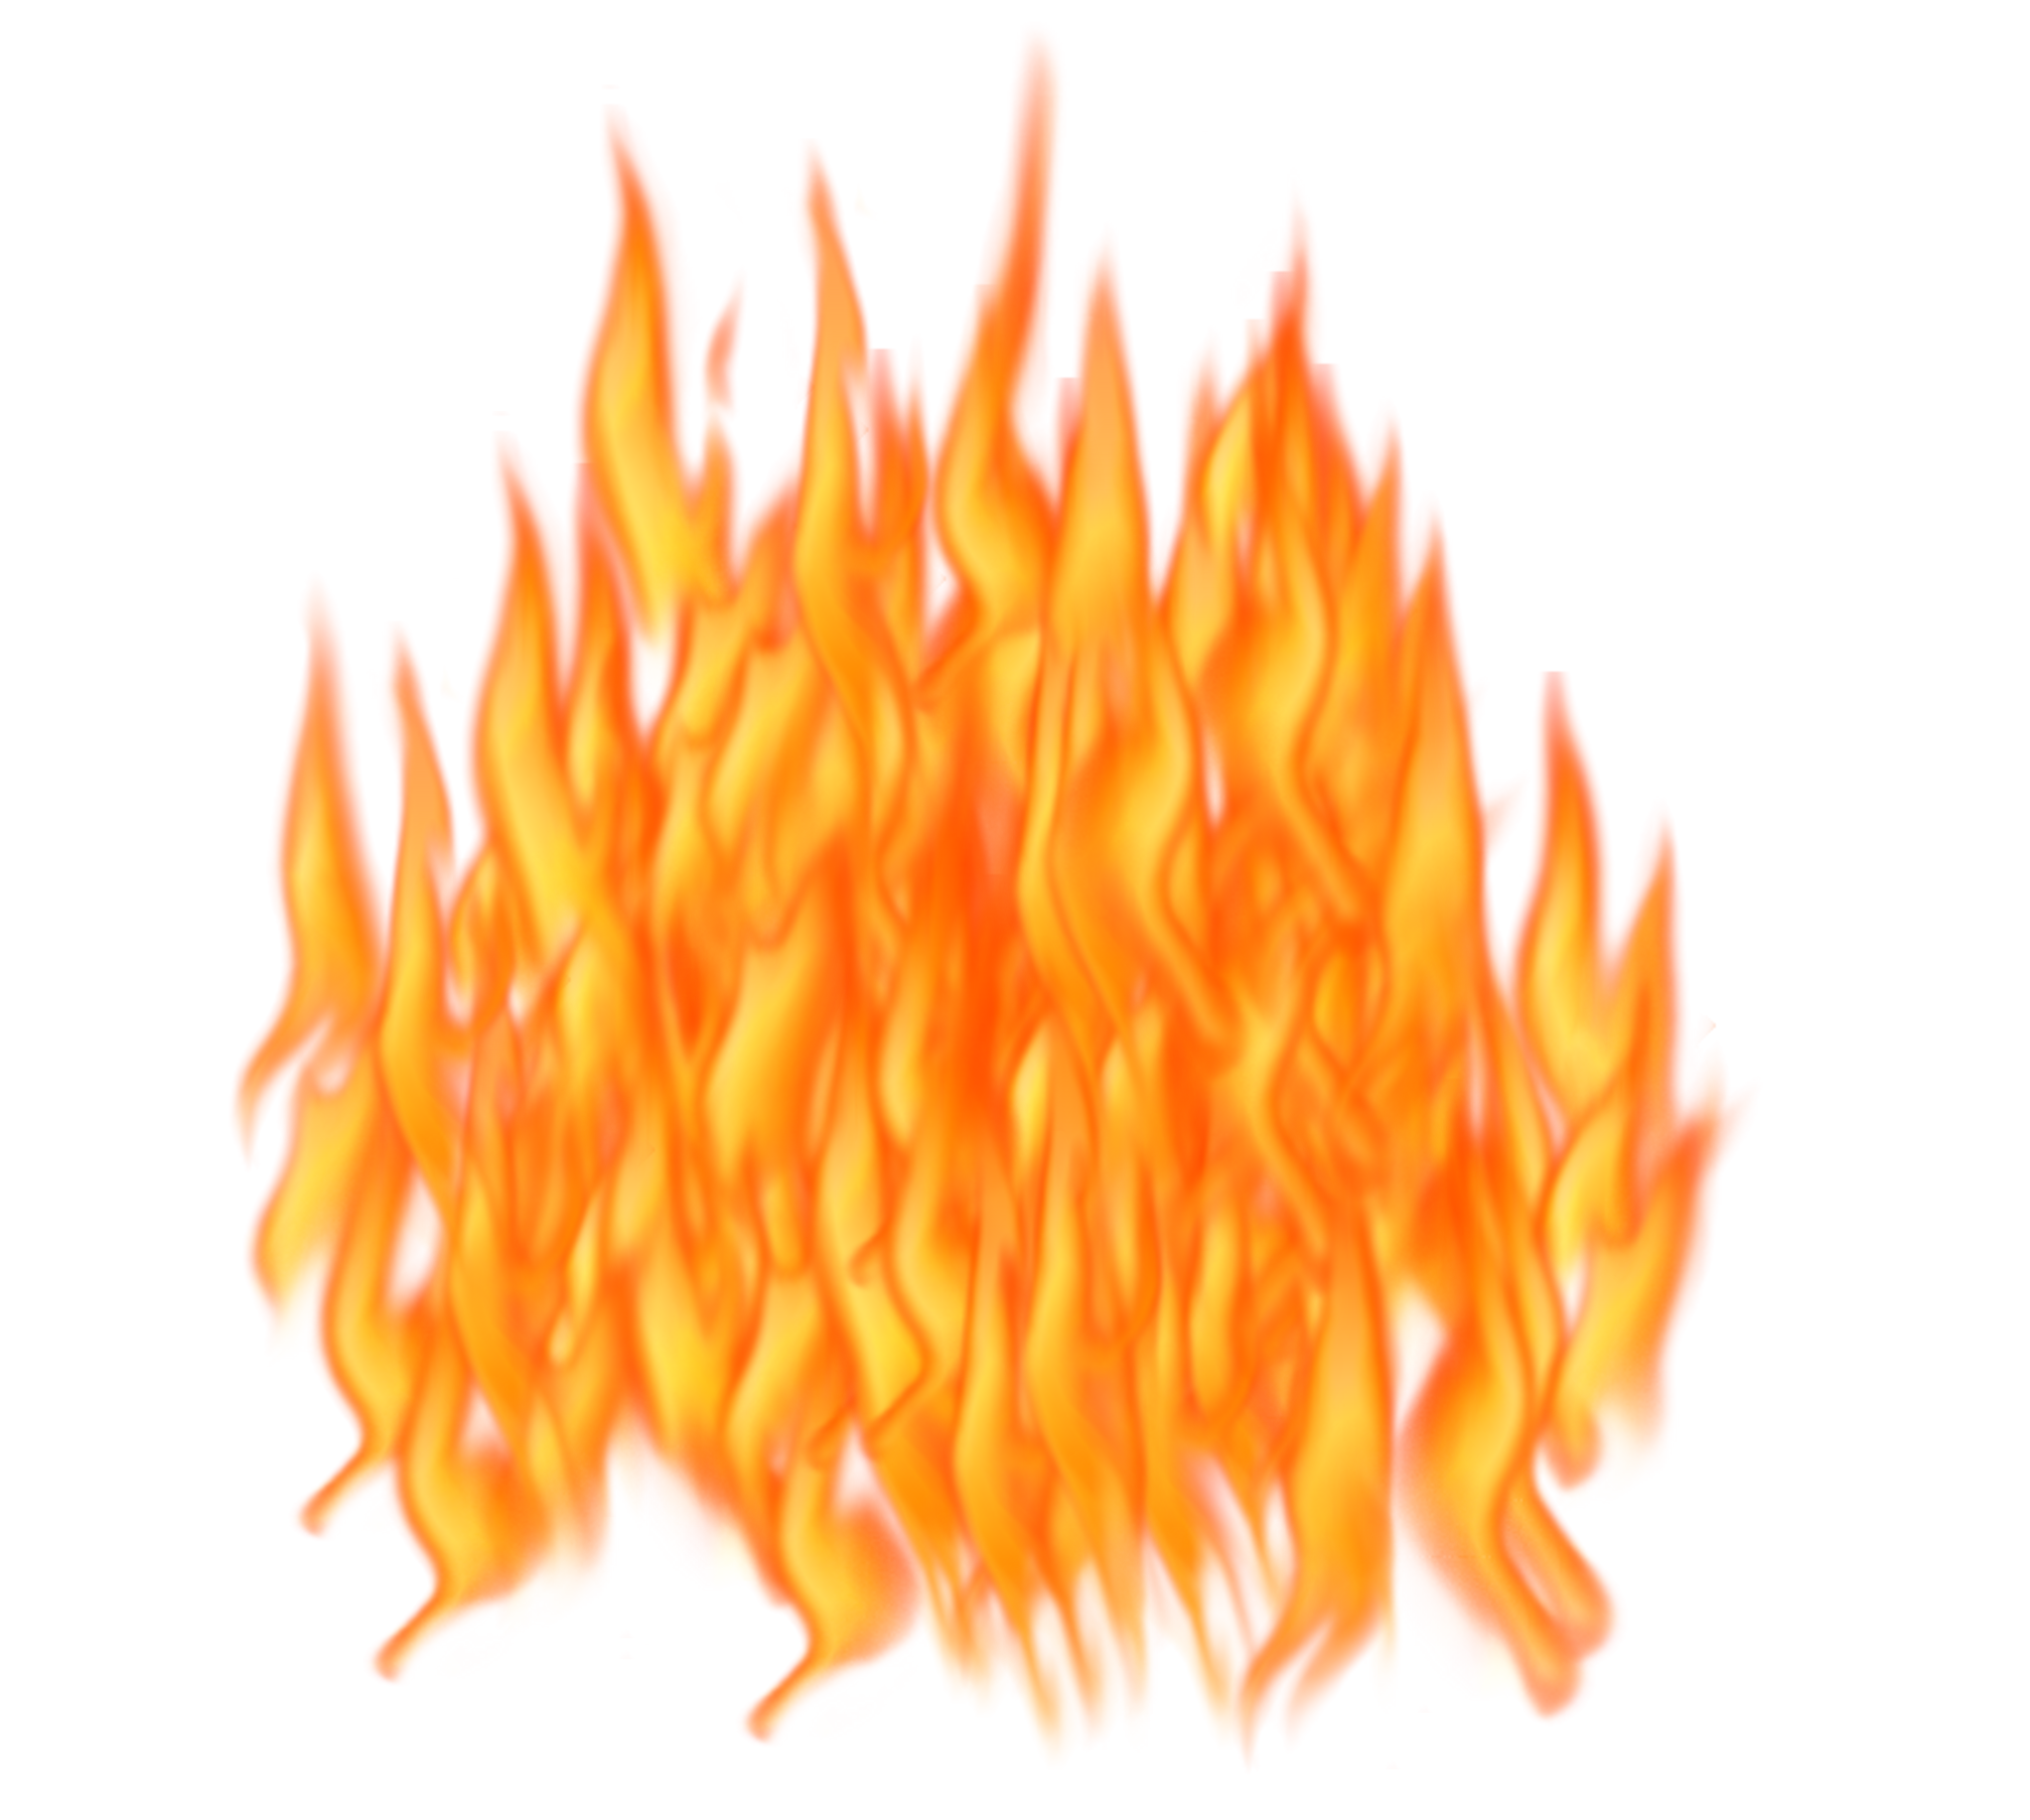 Fire flame PNG image - Fire PNG